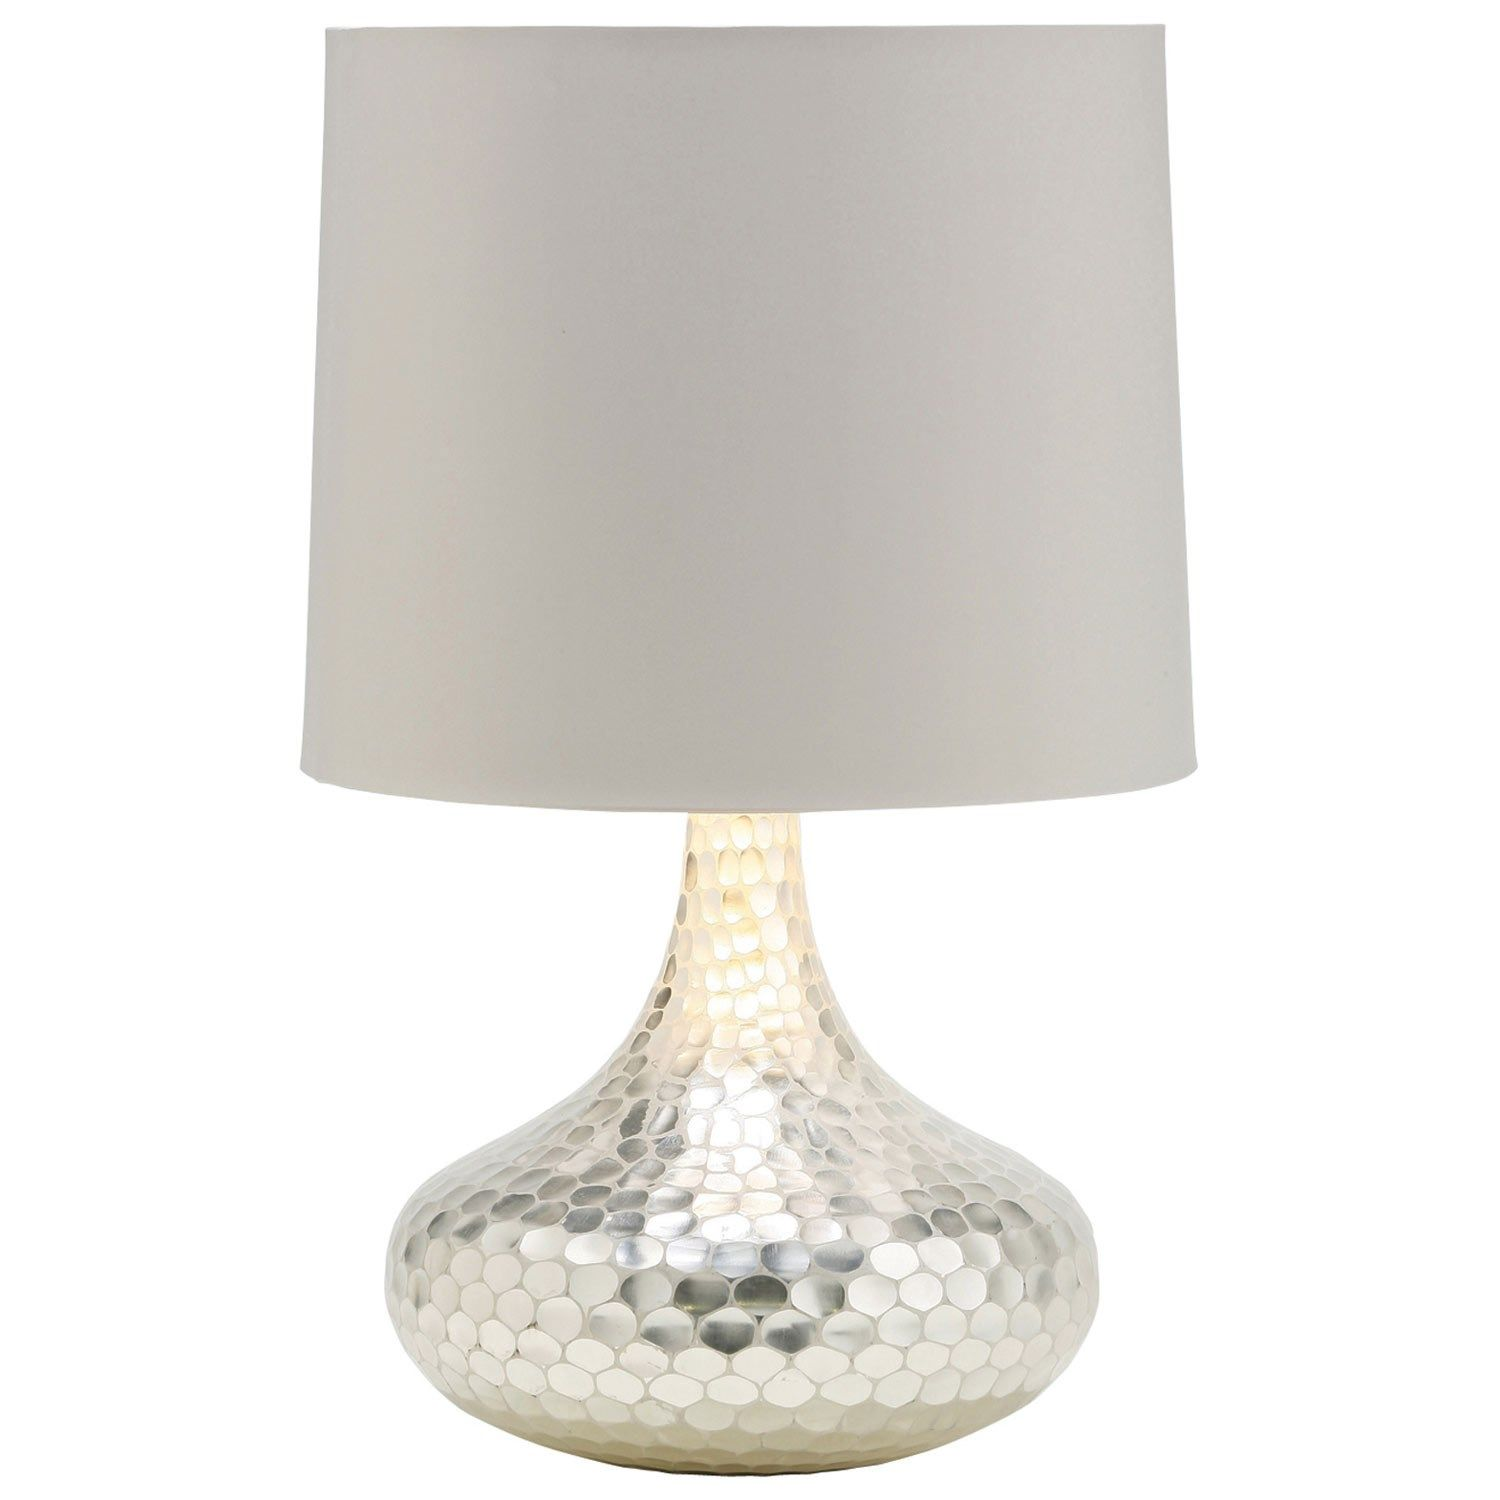 Delicieux Favorite Table Lamp